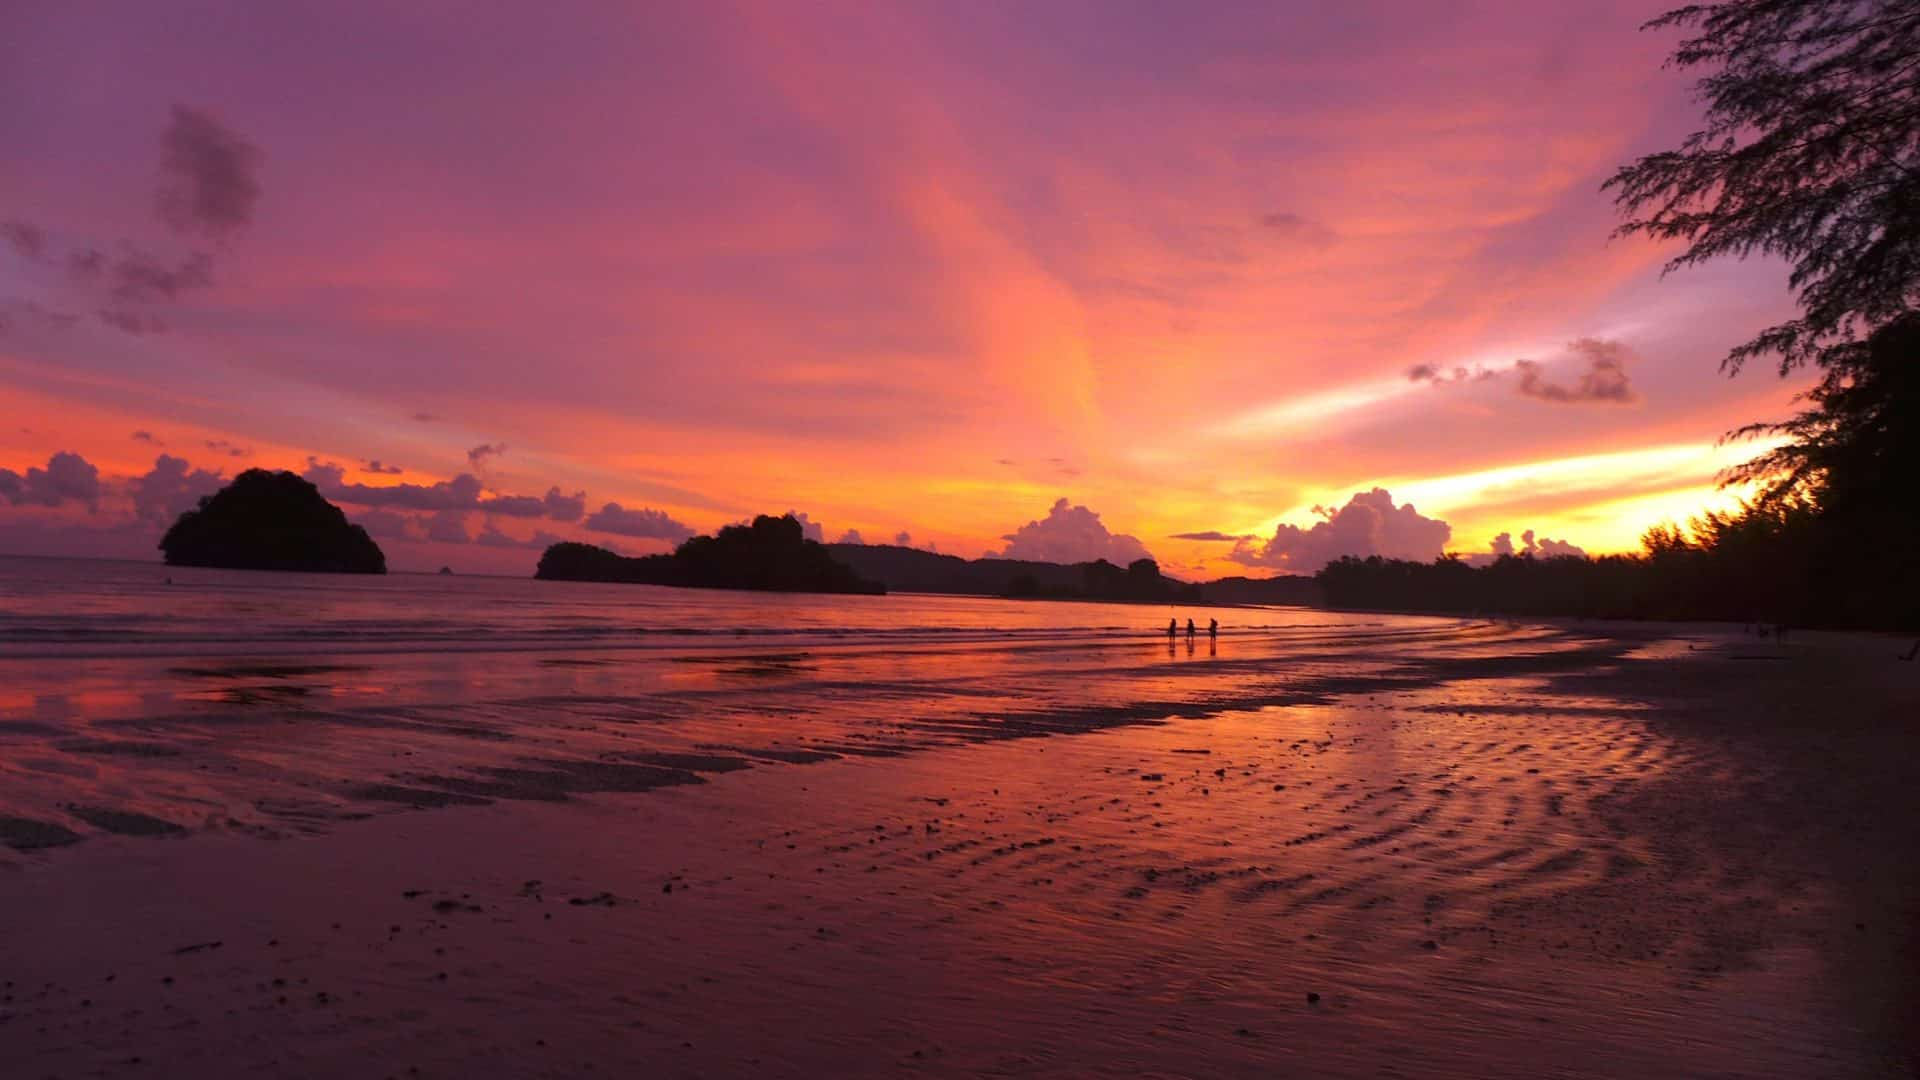 How To Get From Bangkok To Krabi